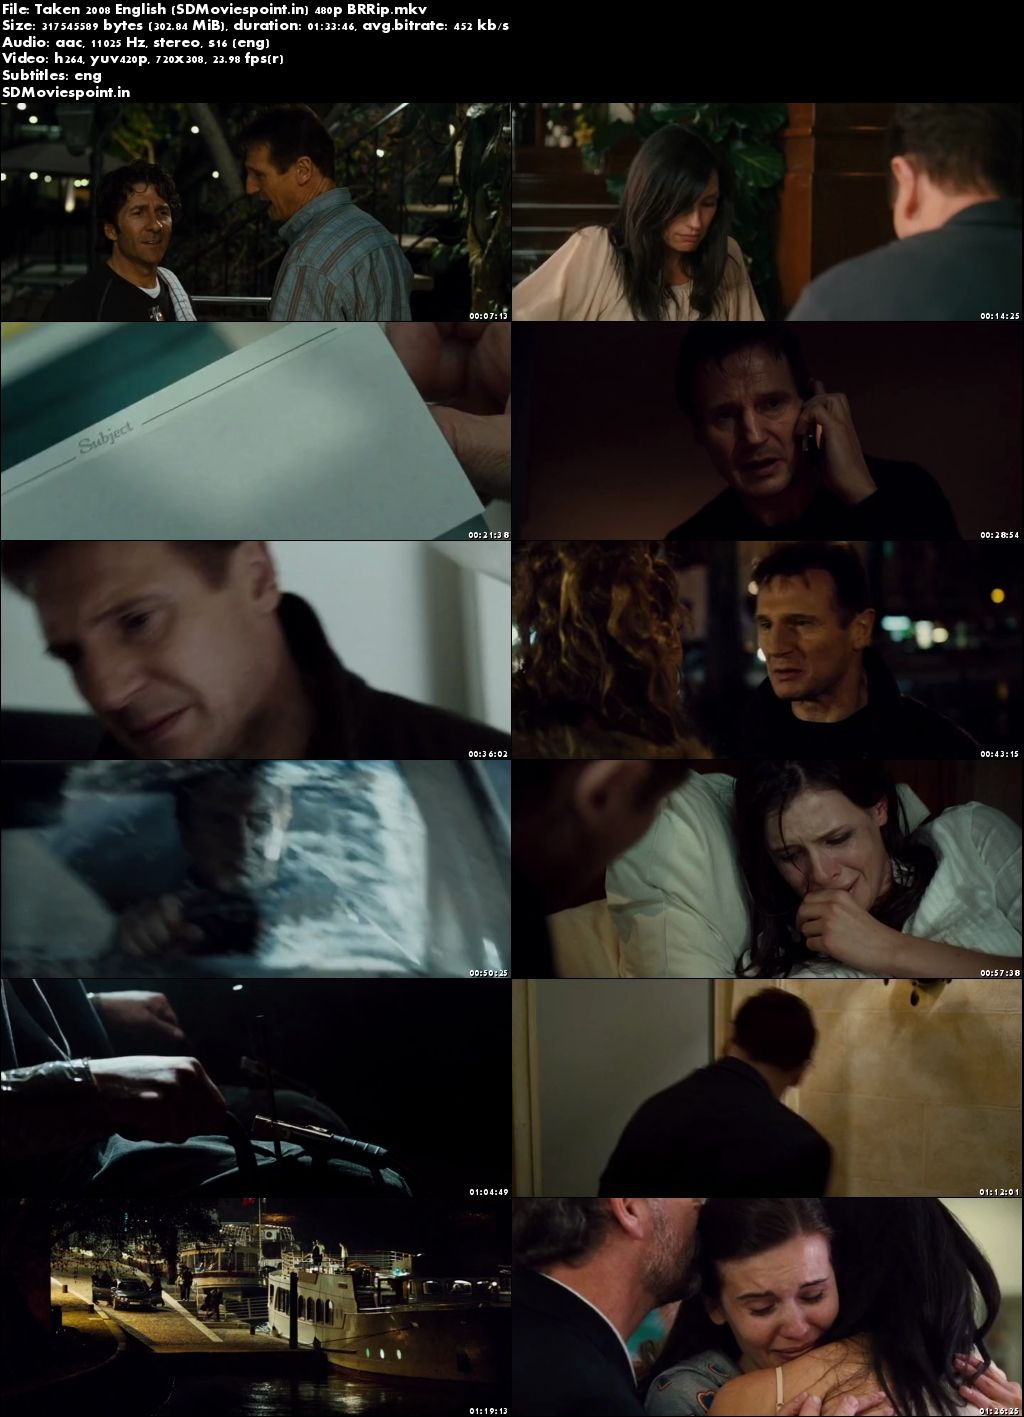 Screen Shots Taken 2008 Full HD Movie Download in English 720p